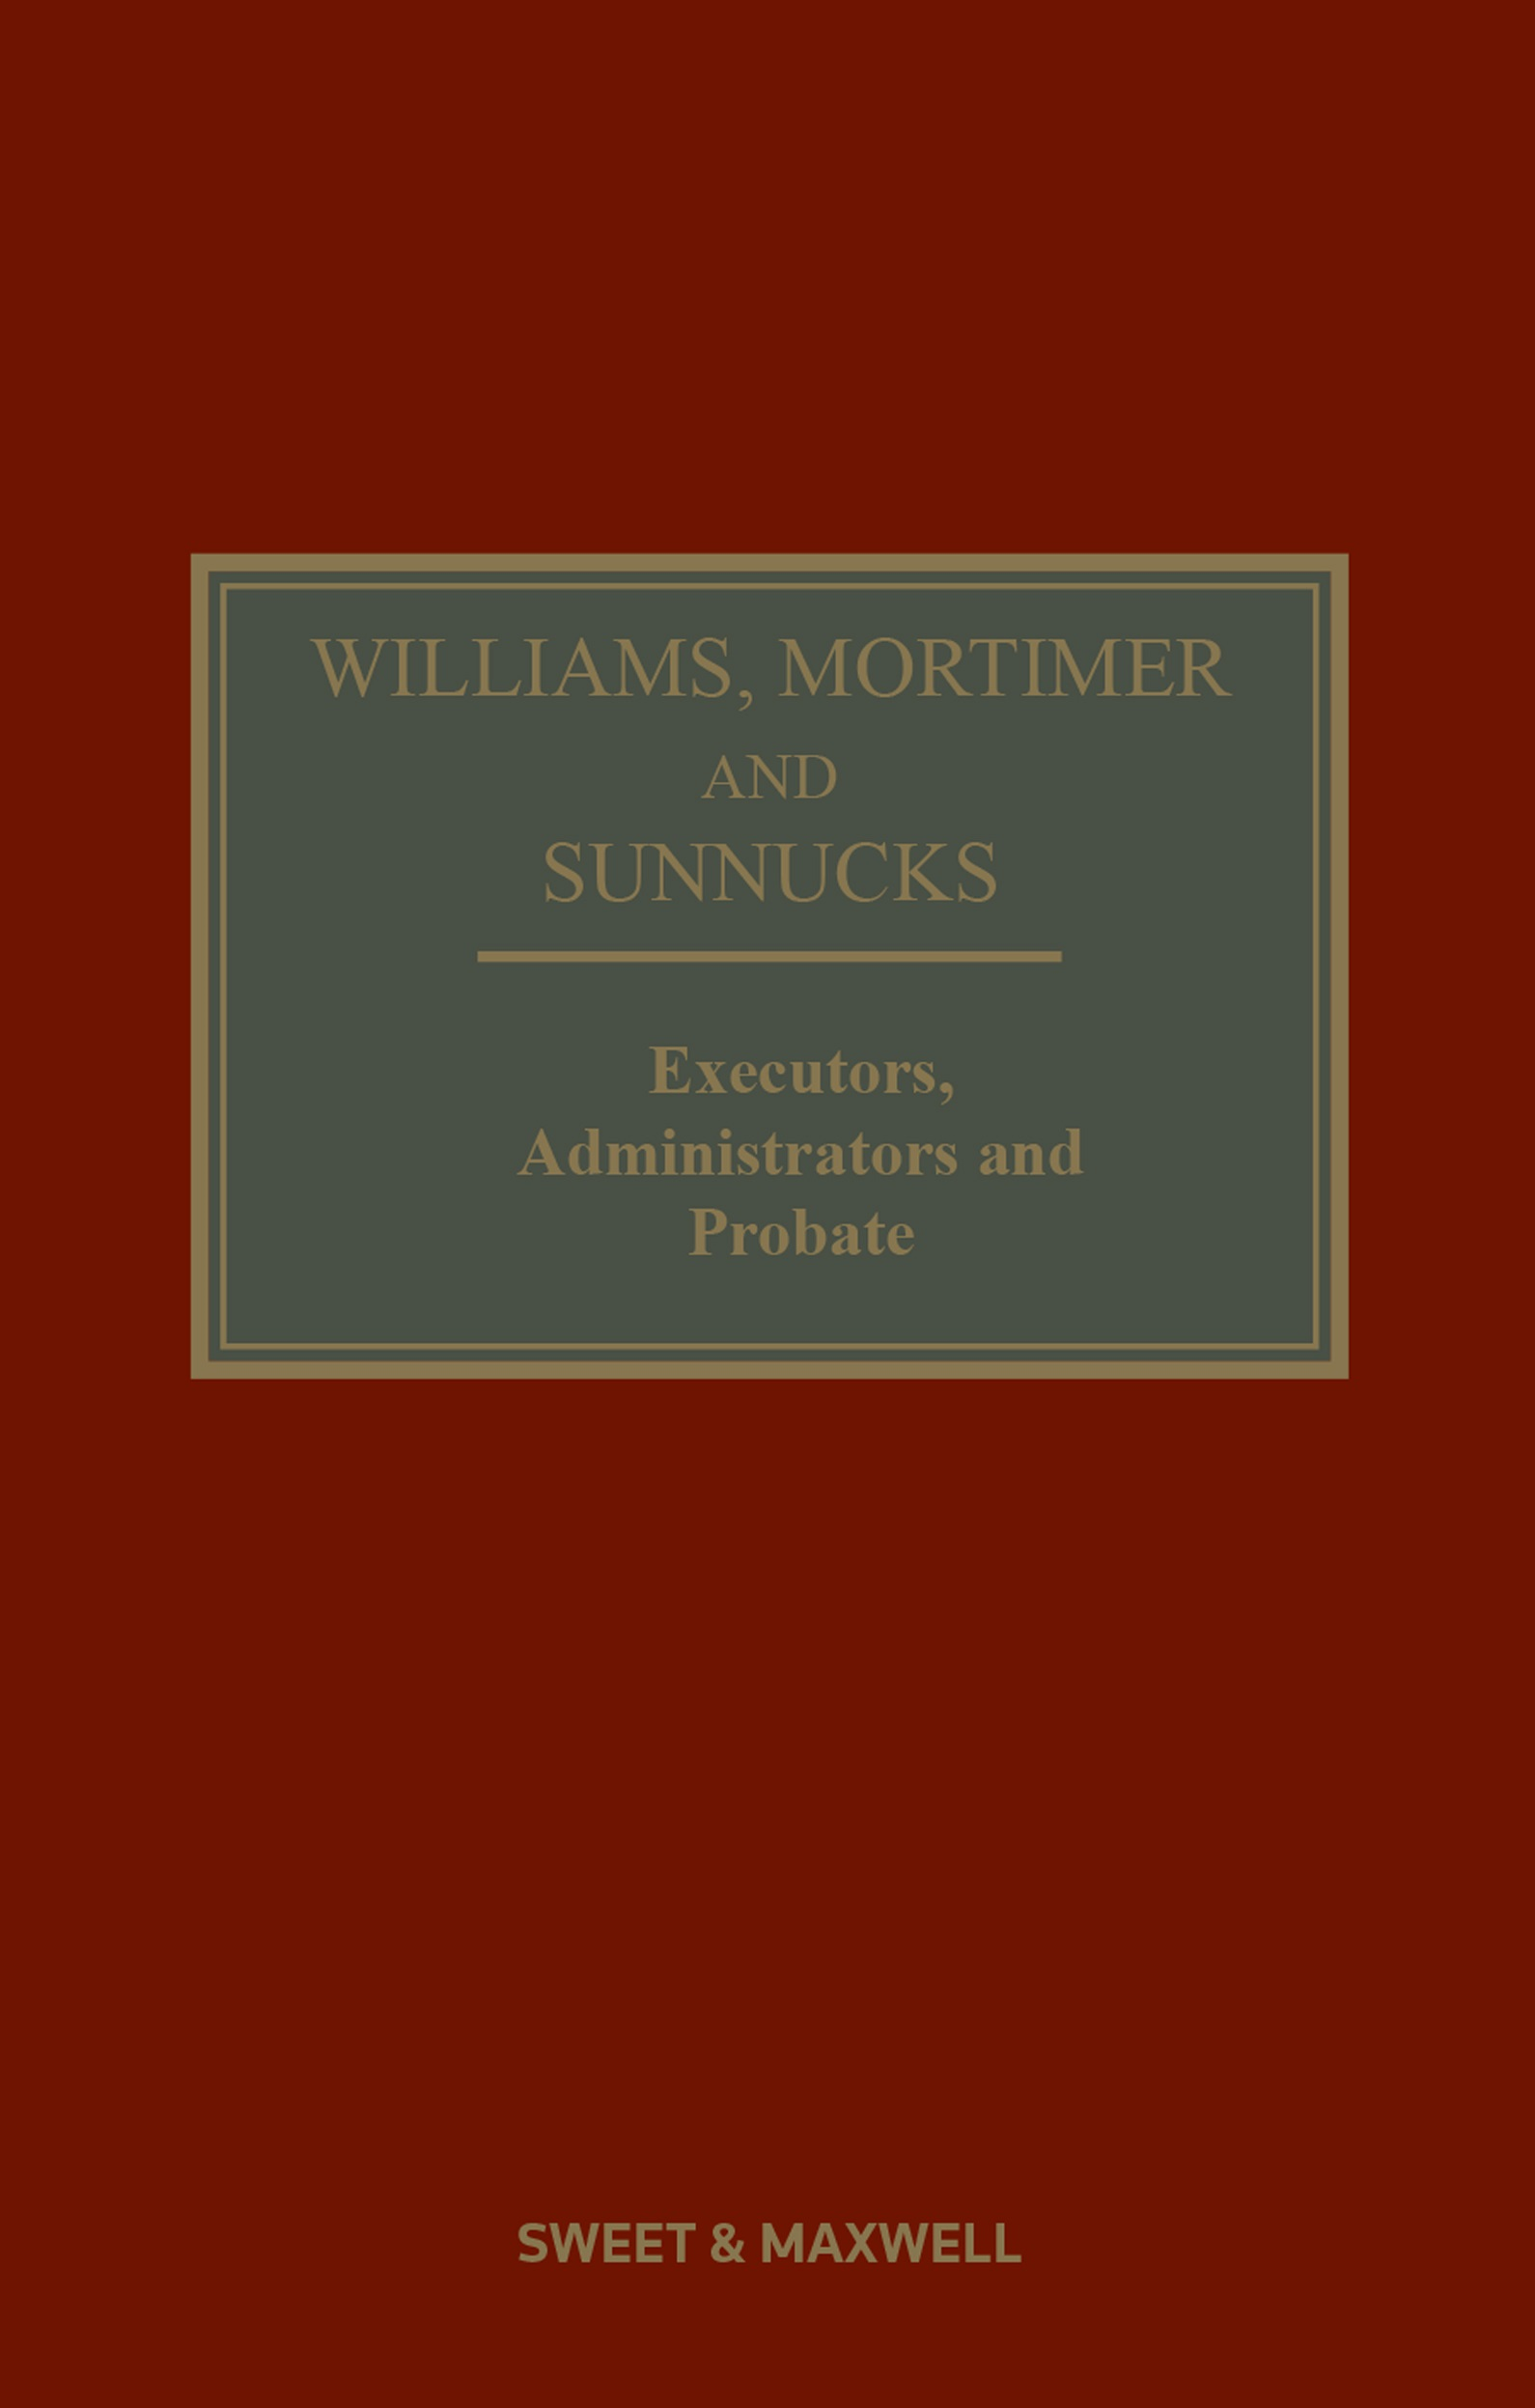 Williams, Mortimer & Sunnucks - Executors, Administrators and Probate 21st edition eBook